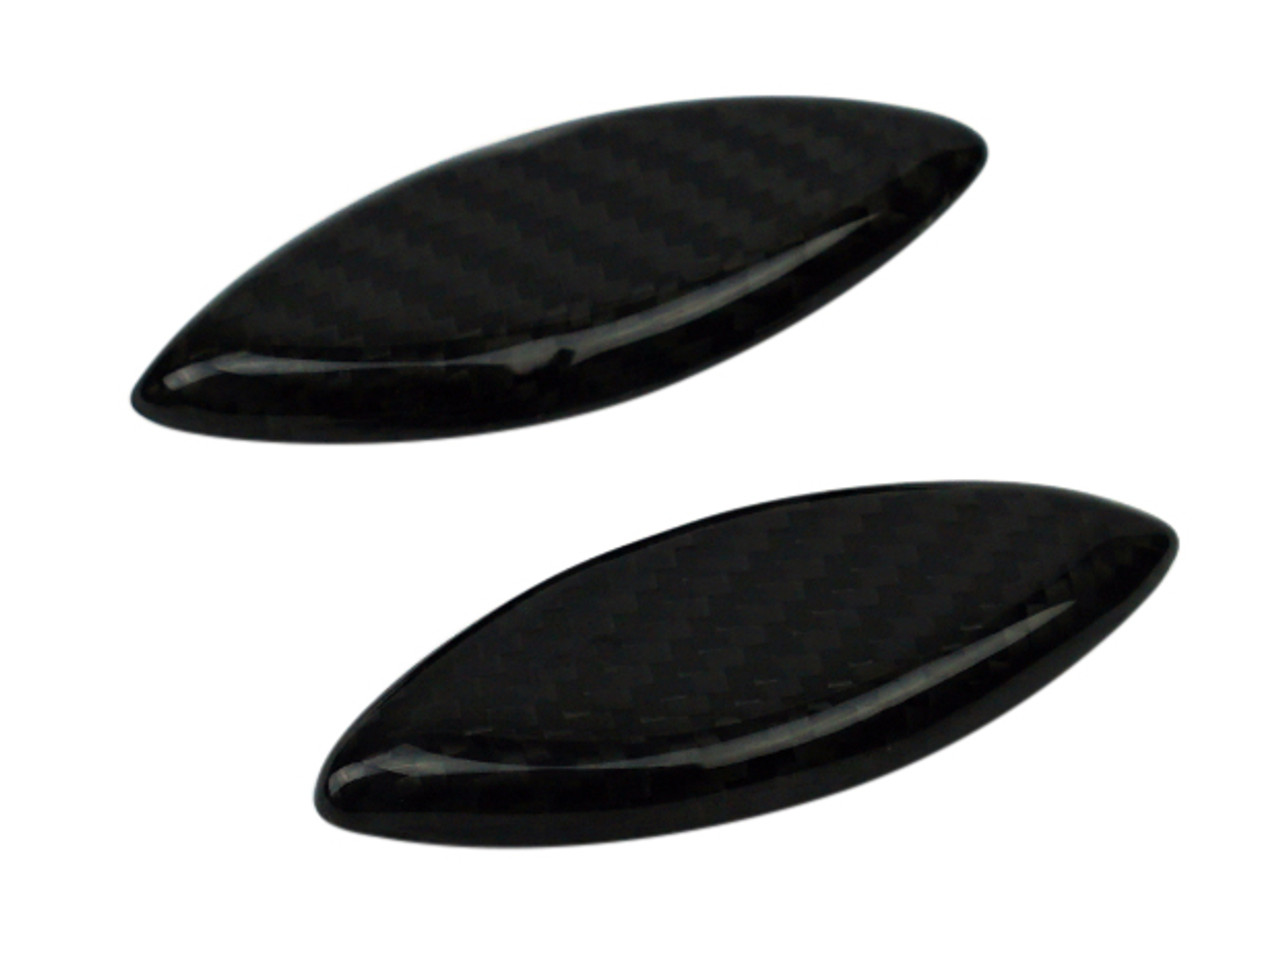 Mirror Cutout Covers in Glossy Twill Weave Carbon Fiber for Kawasaki ZX14/ZZR1400 2012+